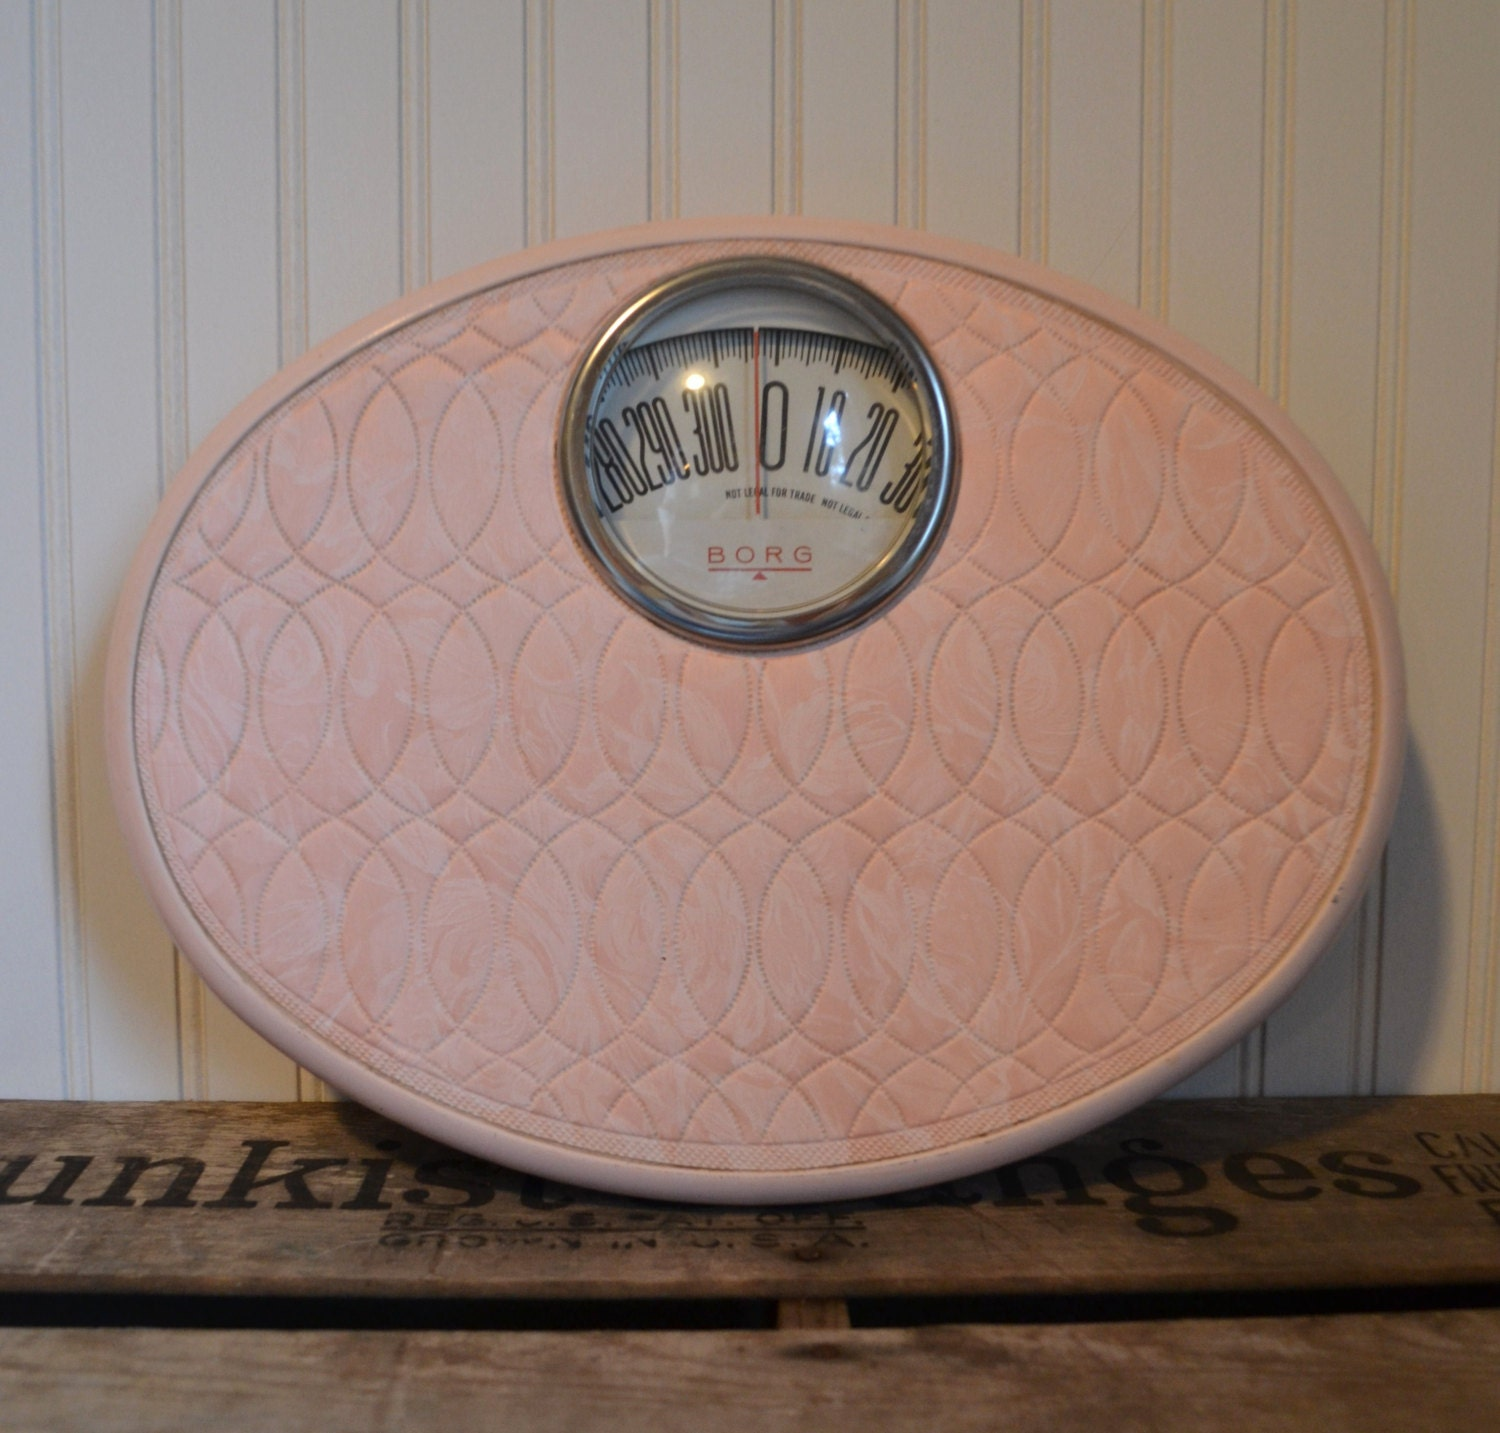 Vintage pretty in pink borg bathroom scale by silkcreekgallery for Borg bathroom scale